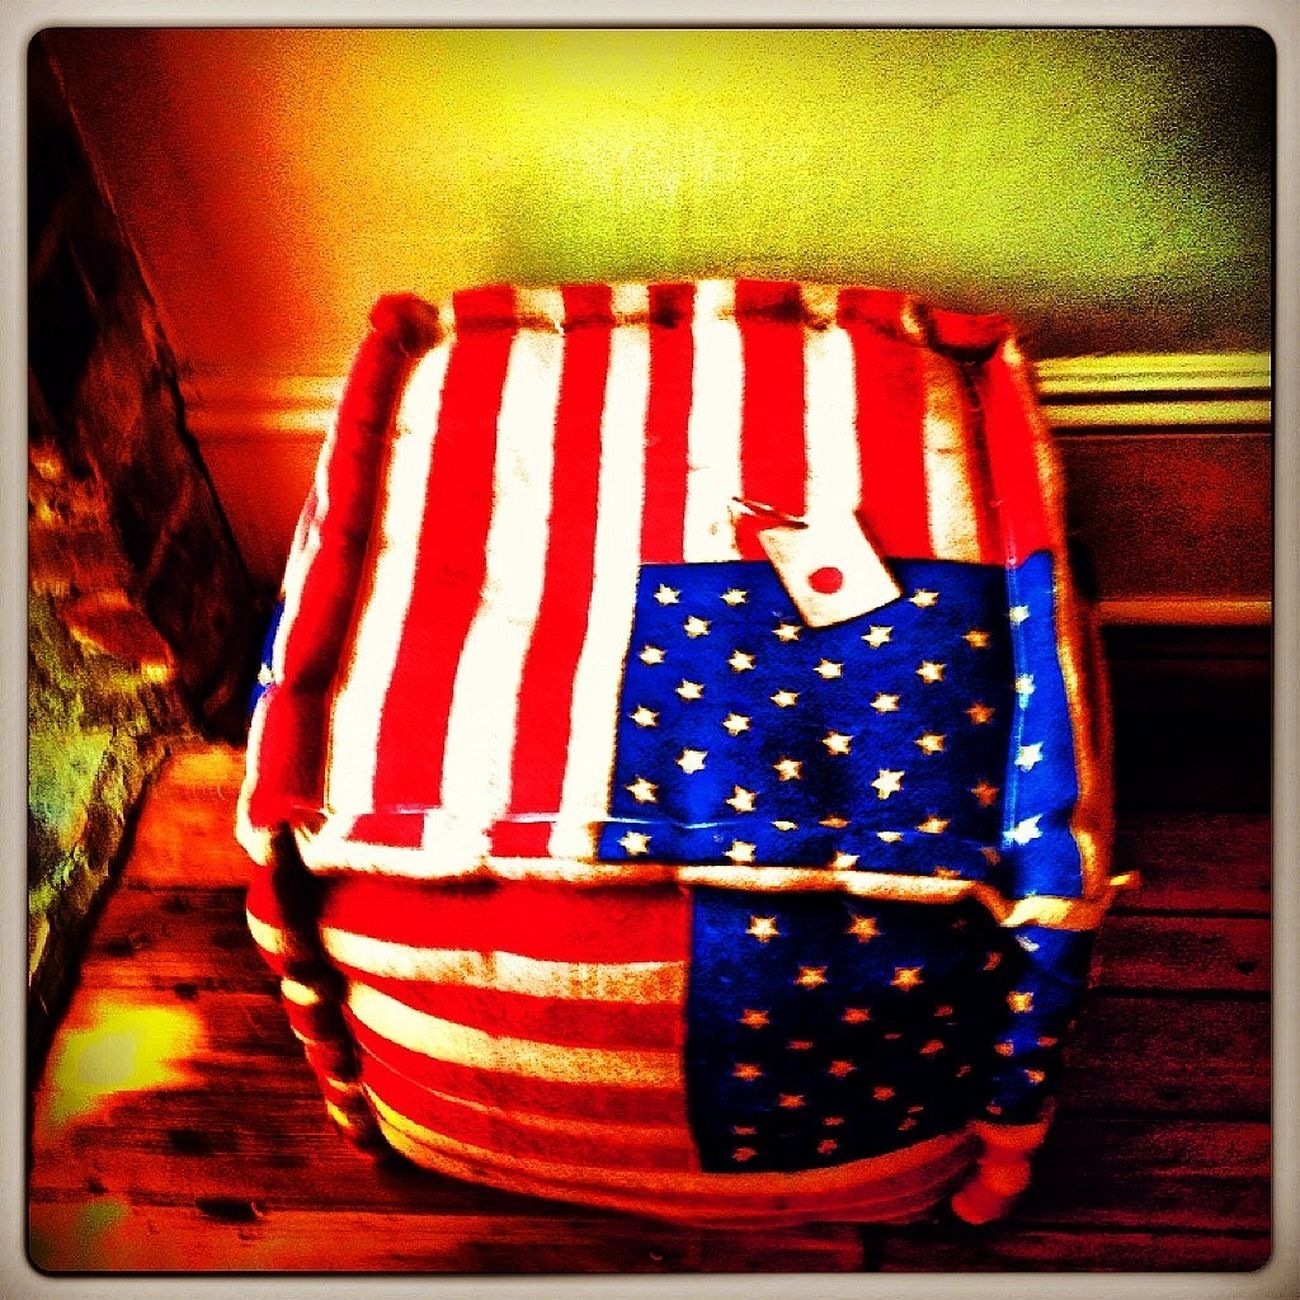 beautiful flag - heavy mterial like a burlap - perfect as ottoman or a stool/ table @dluxesavannah D.luxesavannah